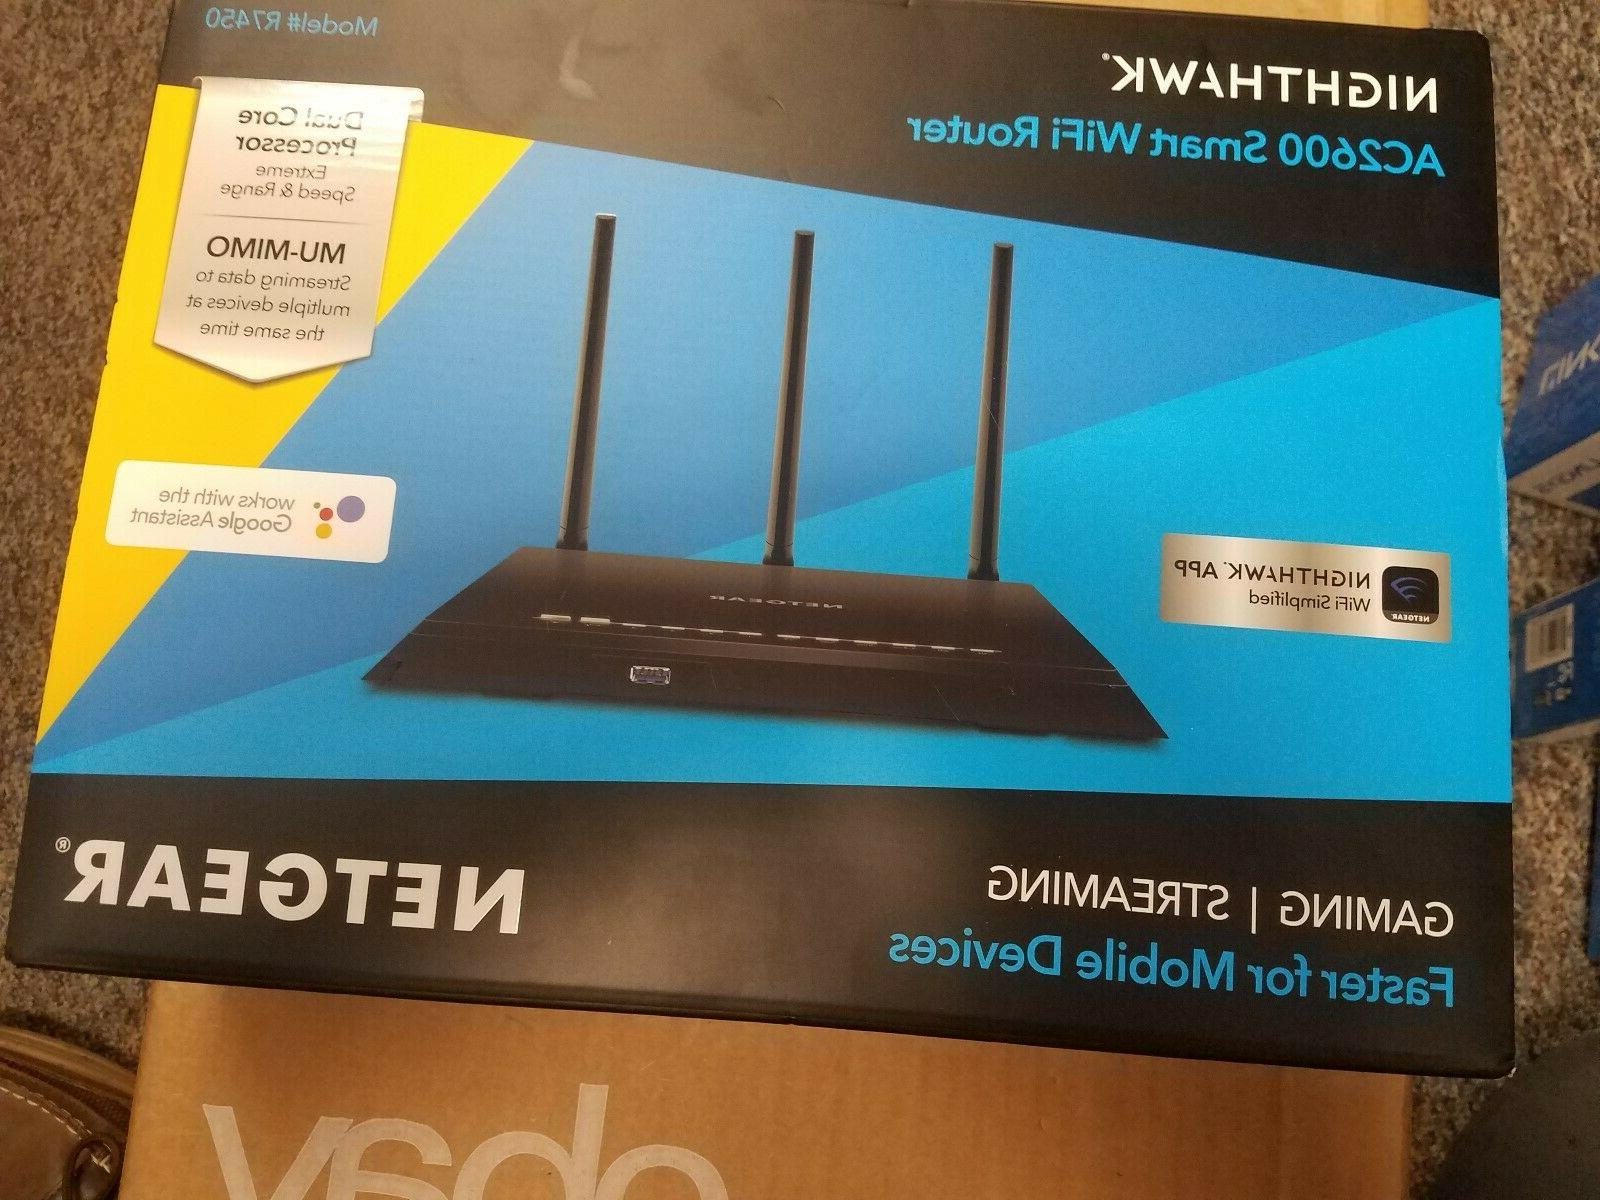 new nighthawk ac2600 smart wifi router r7450